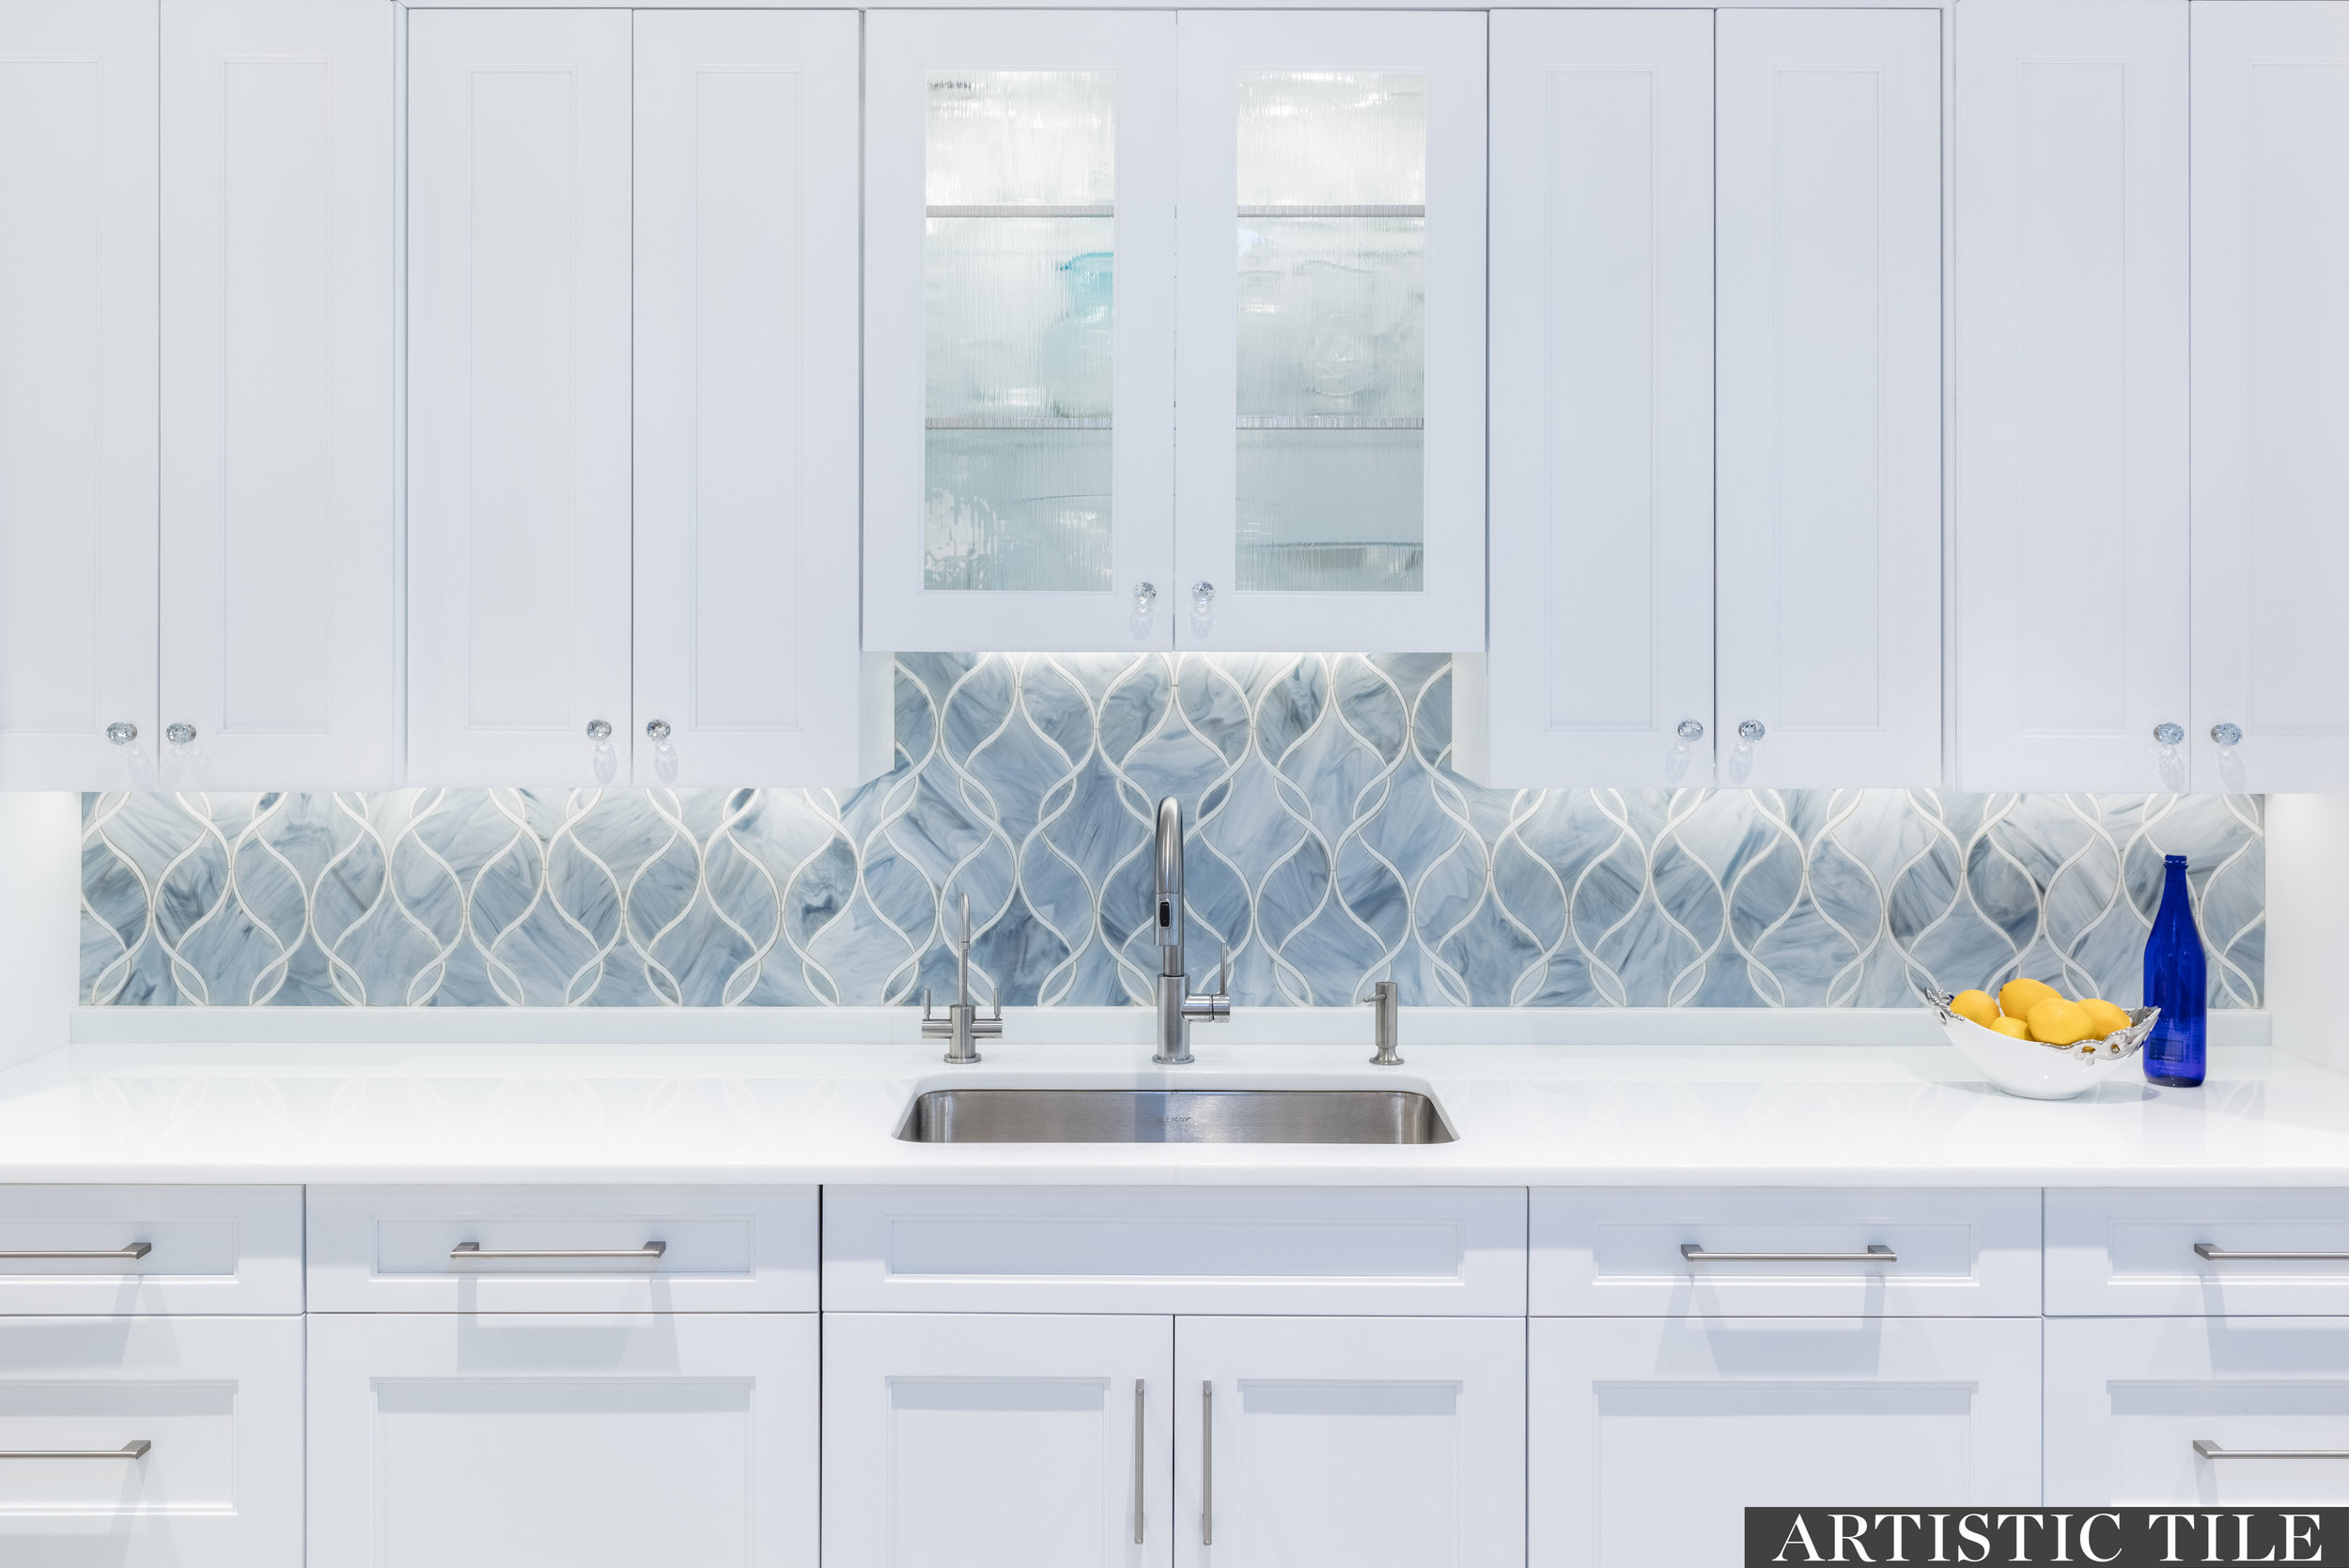 ART - Artistic -Claridges Light Blue Ice White - Waterjet- Backsplash.jpg